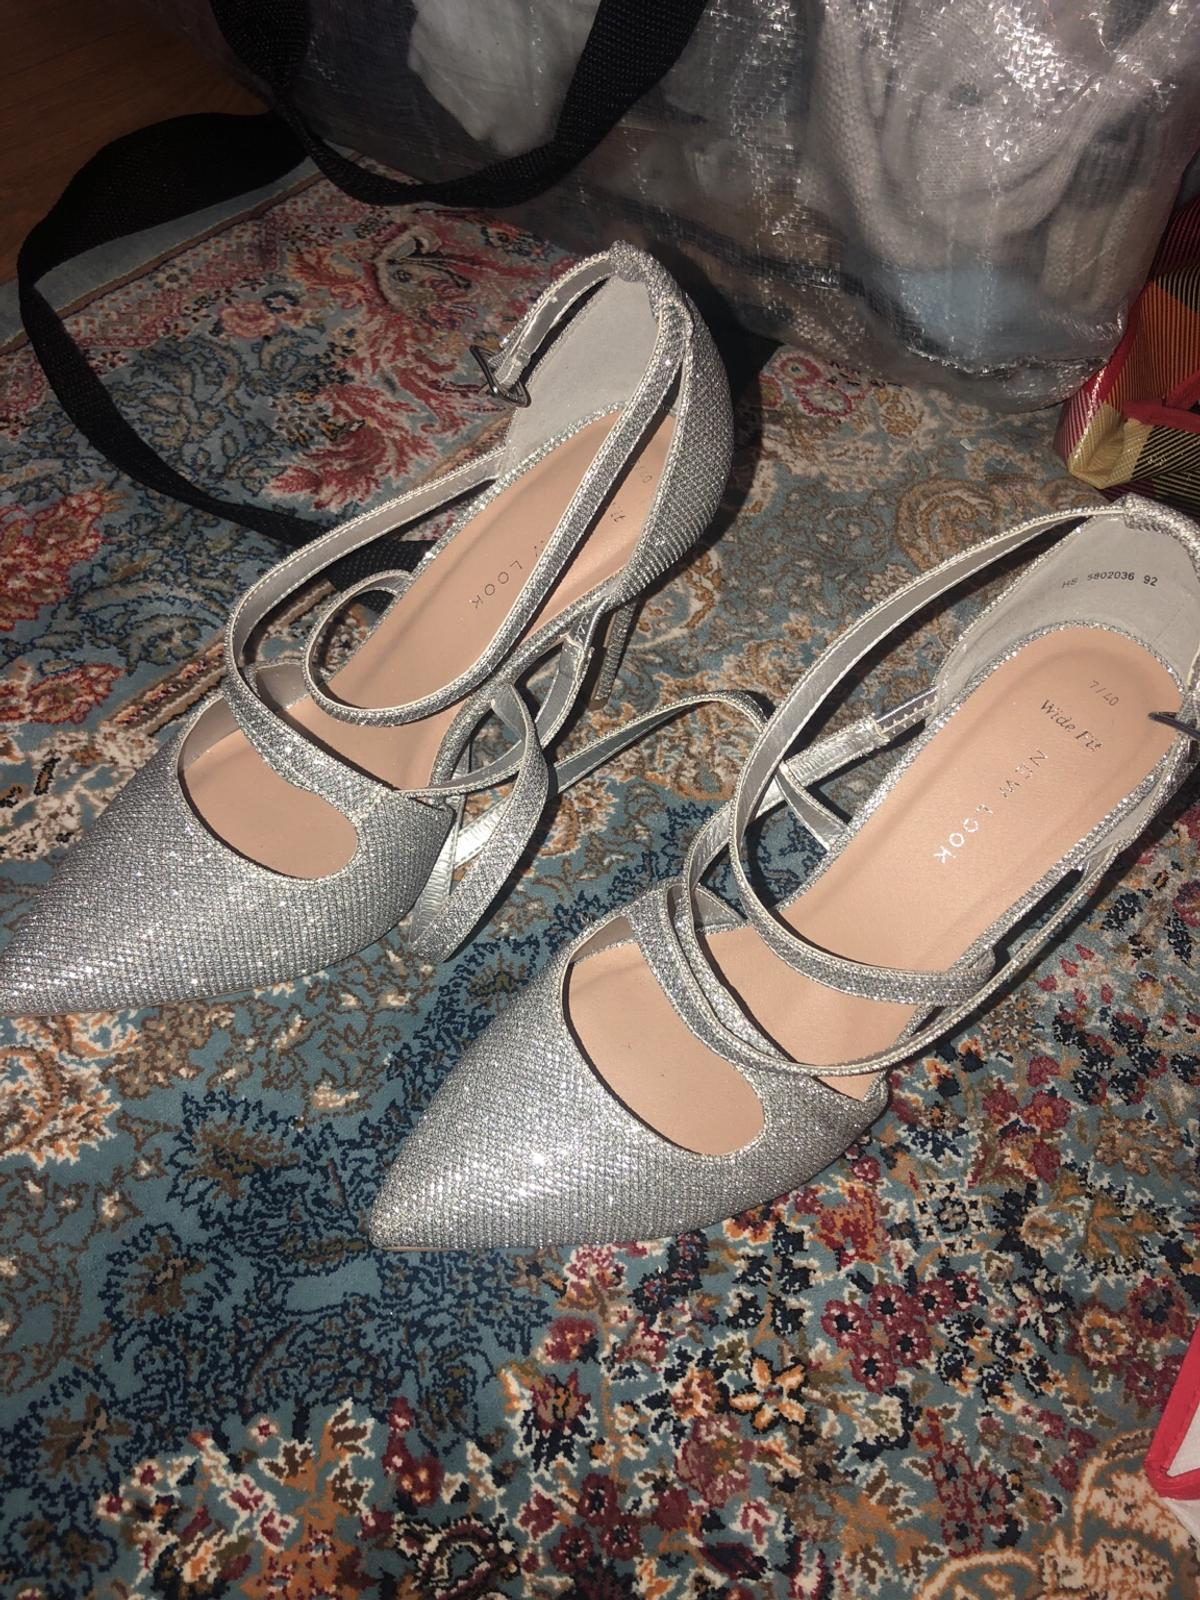 6b7710368e72 Size 7 wide feet new look sparkly shoes in NW6 Westminster for £7.00 ...